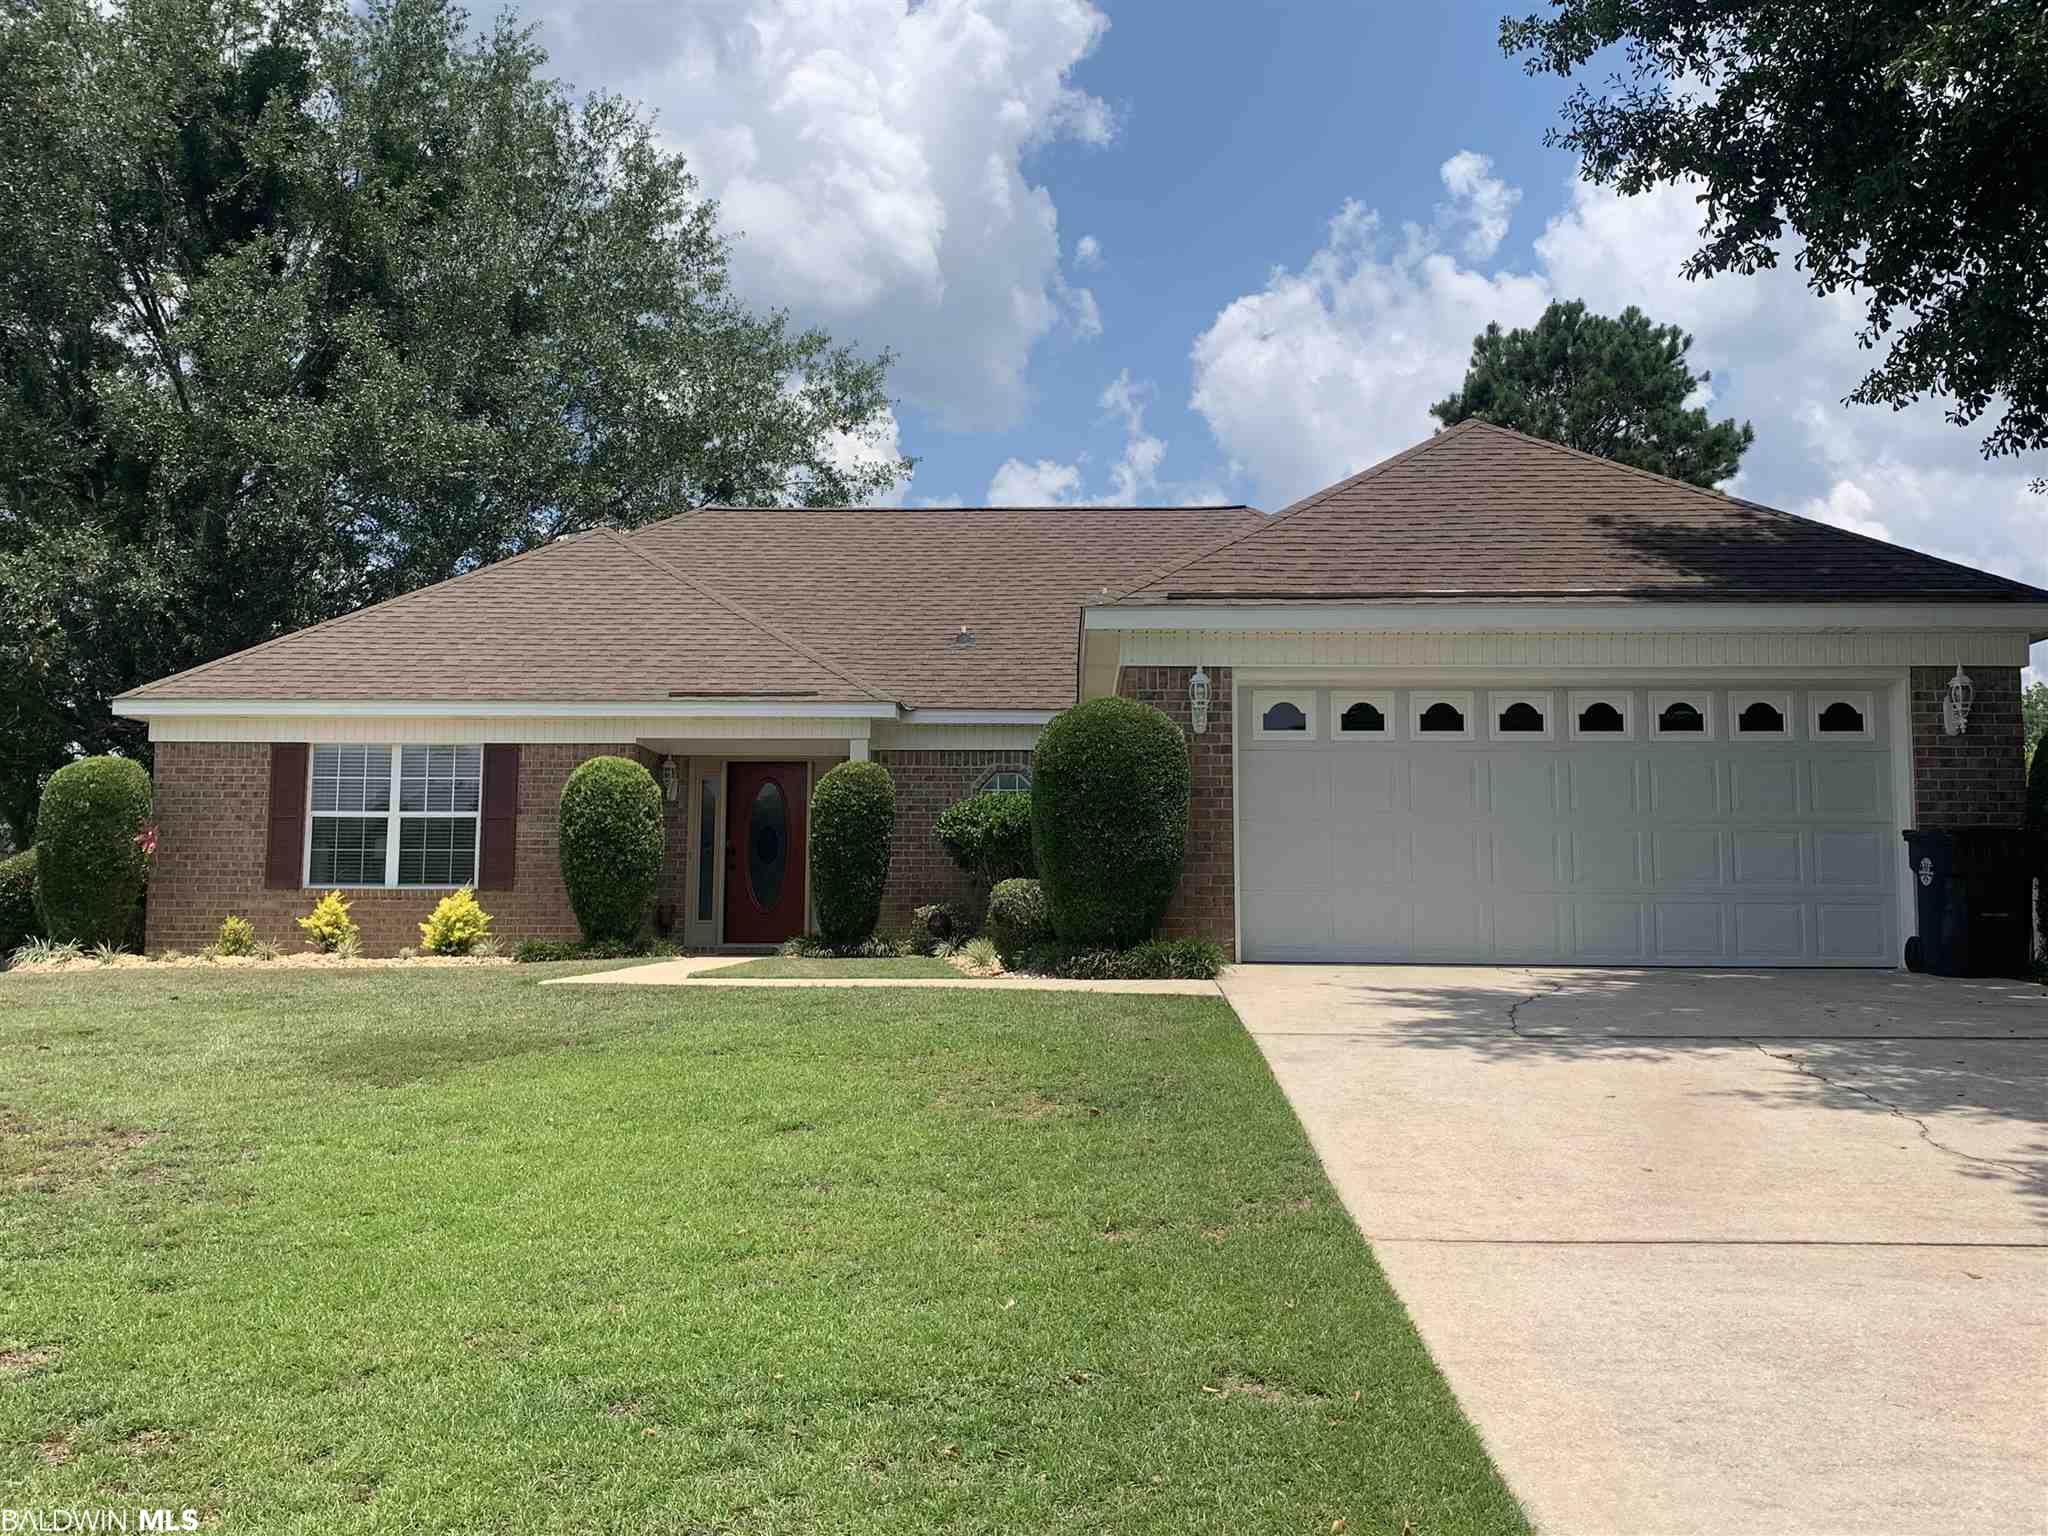 Curb Appeal! Pulling into this driveway you will notice the beautiful home with shade trees in the front and back yard. The back yard is completely privacy fenced. Great for outside activities and pets. As you enter the home, you will find a very open floor concept with hardwood floors. The gas fire places invites you to curl up by the fire. The kitchen shines with the stainless steel appliances and granite counter tops. French doors open up to a bonus room which can be used in a variety of ways. All this is under a new roof! Located in Robertsdale's Southfield Estates which is conveniently located on HWY 90 between the Beach Express and HWY 59 giving you easy access to Foley, Gulf Shores, Mobile and Pensacola. Listing company makes no representation as to accuracy of square footage; buyer to verify.